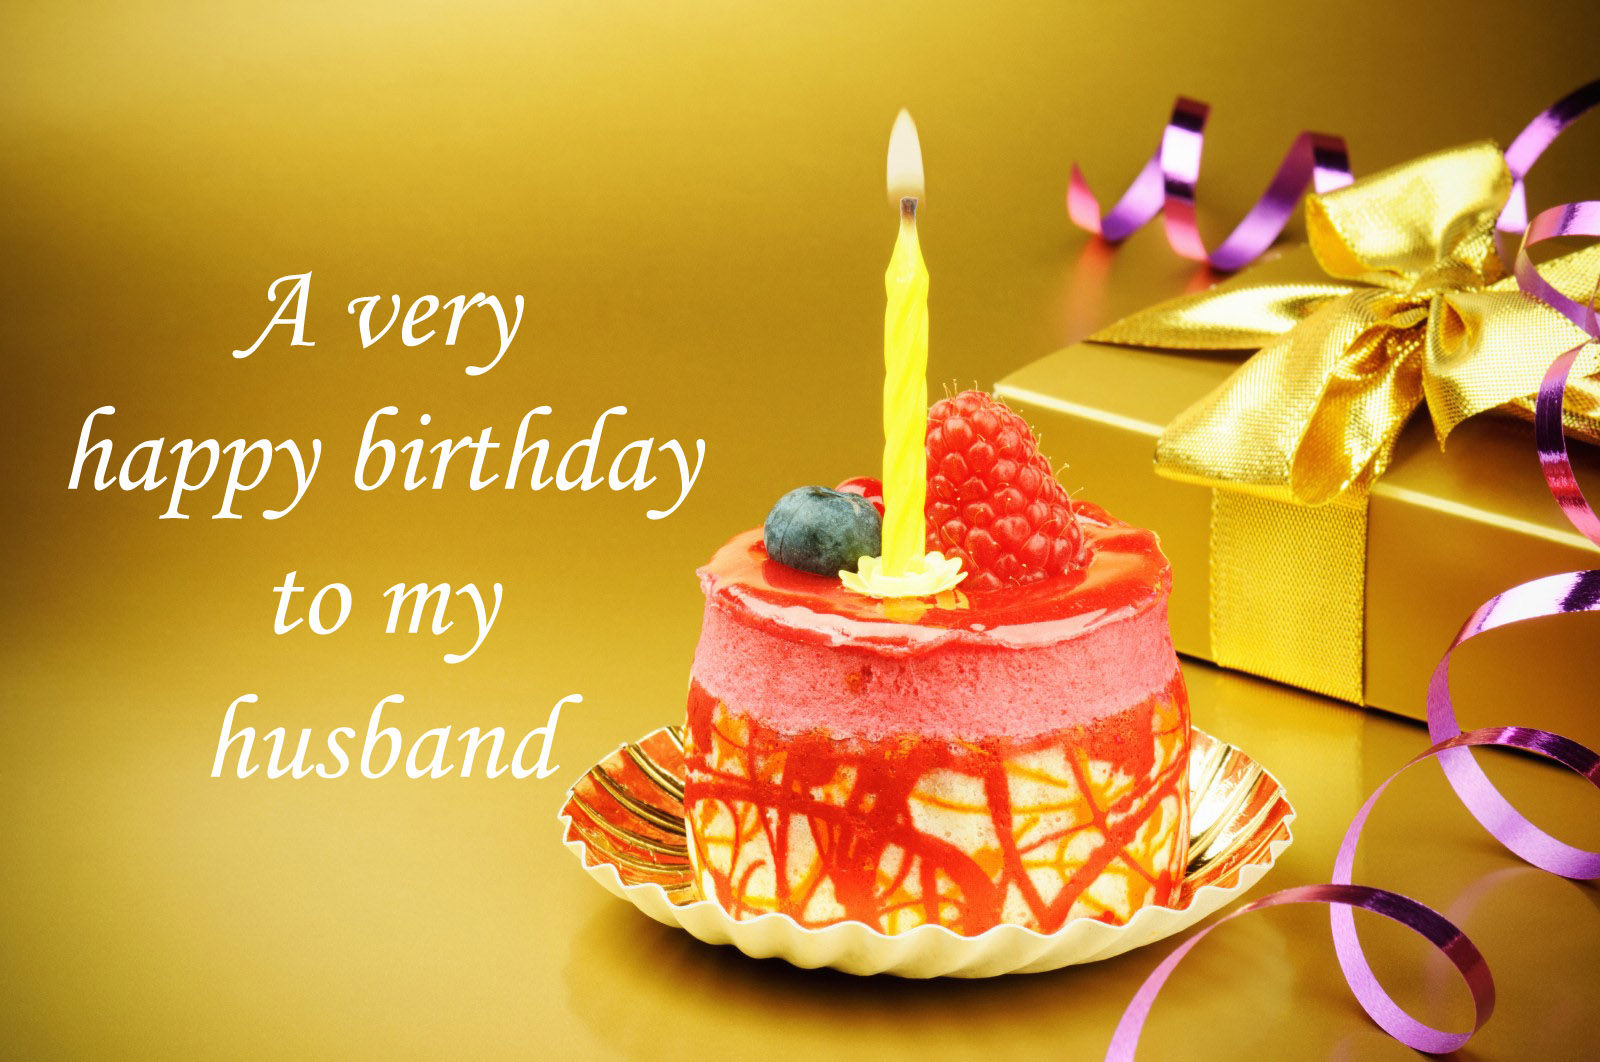 birthday wish to husband message ; a-very-happy-birthday-to-my-husband